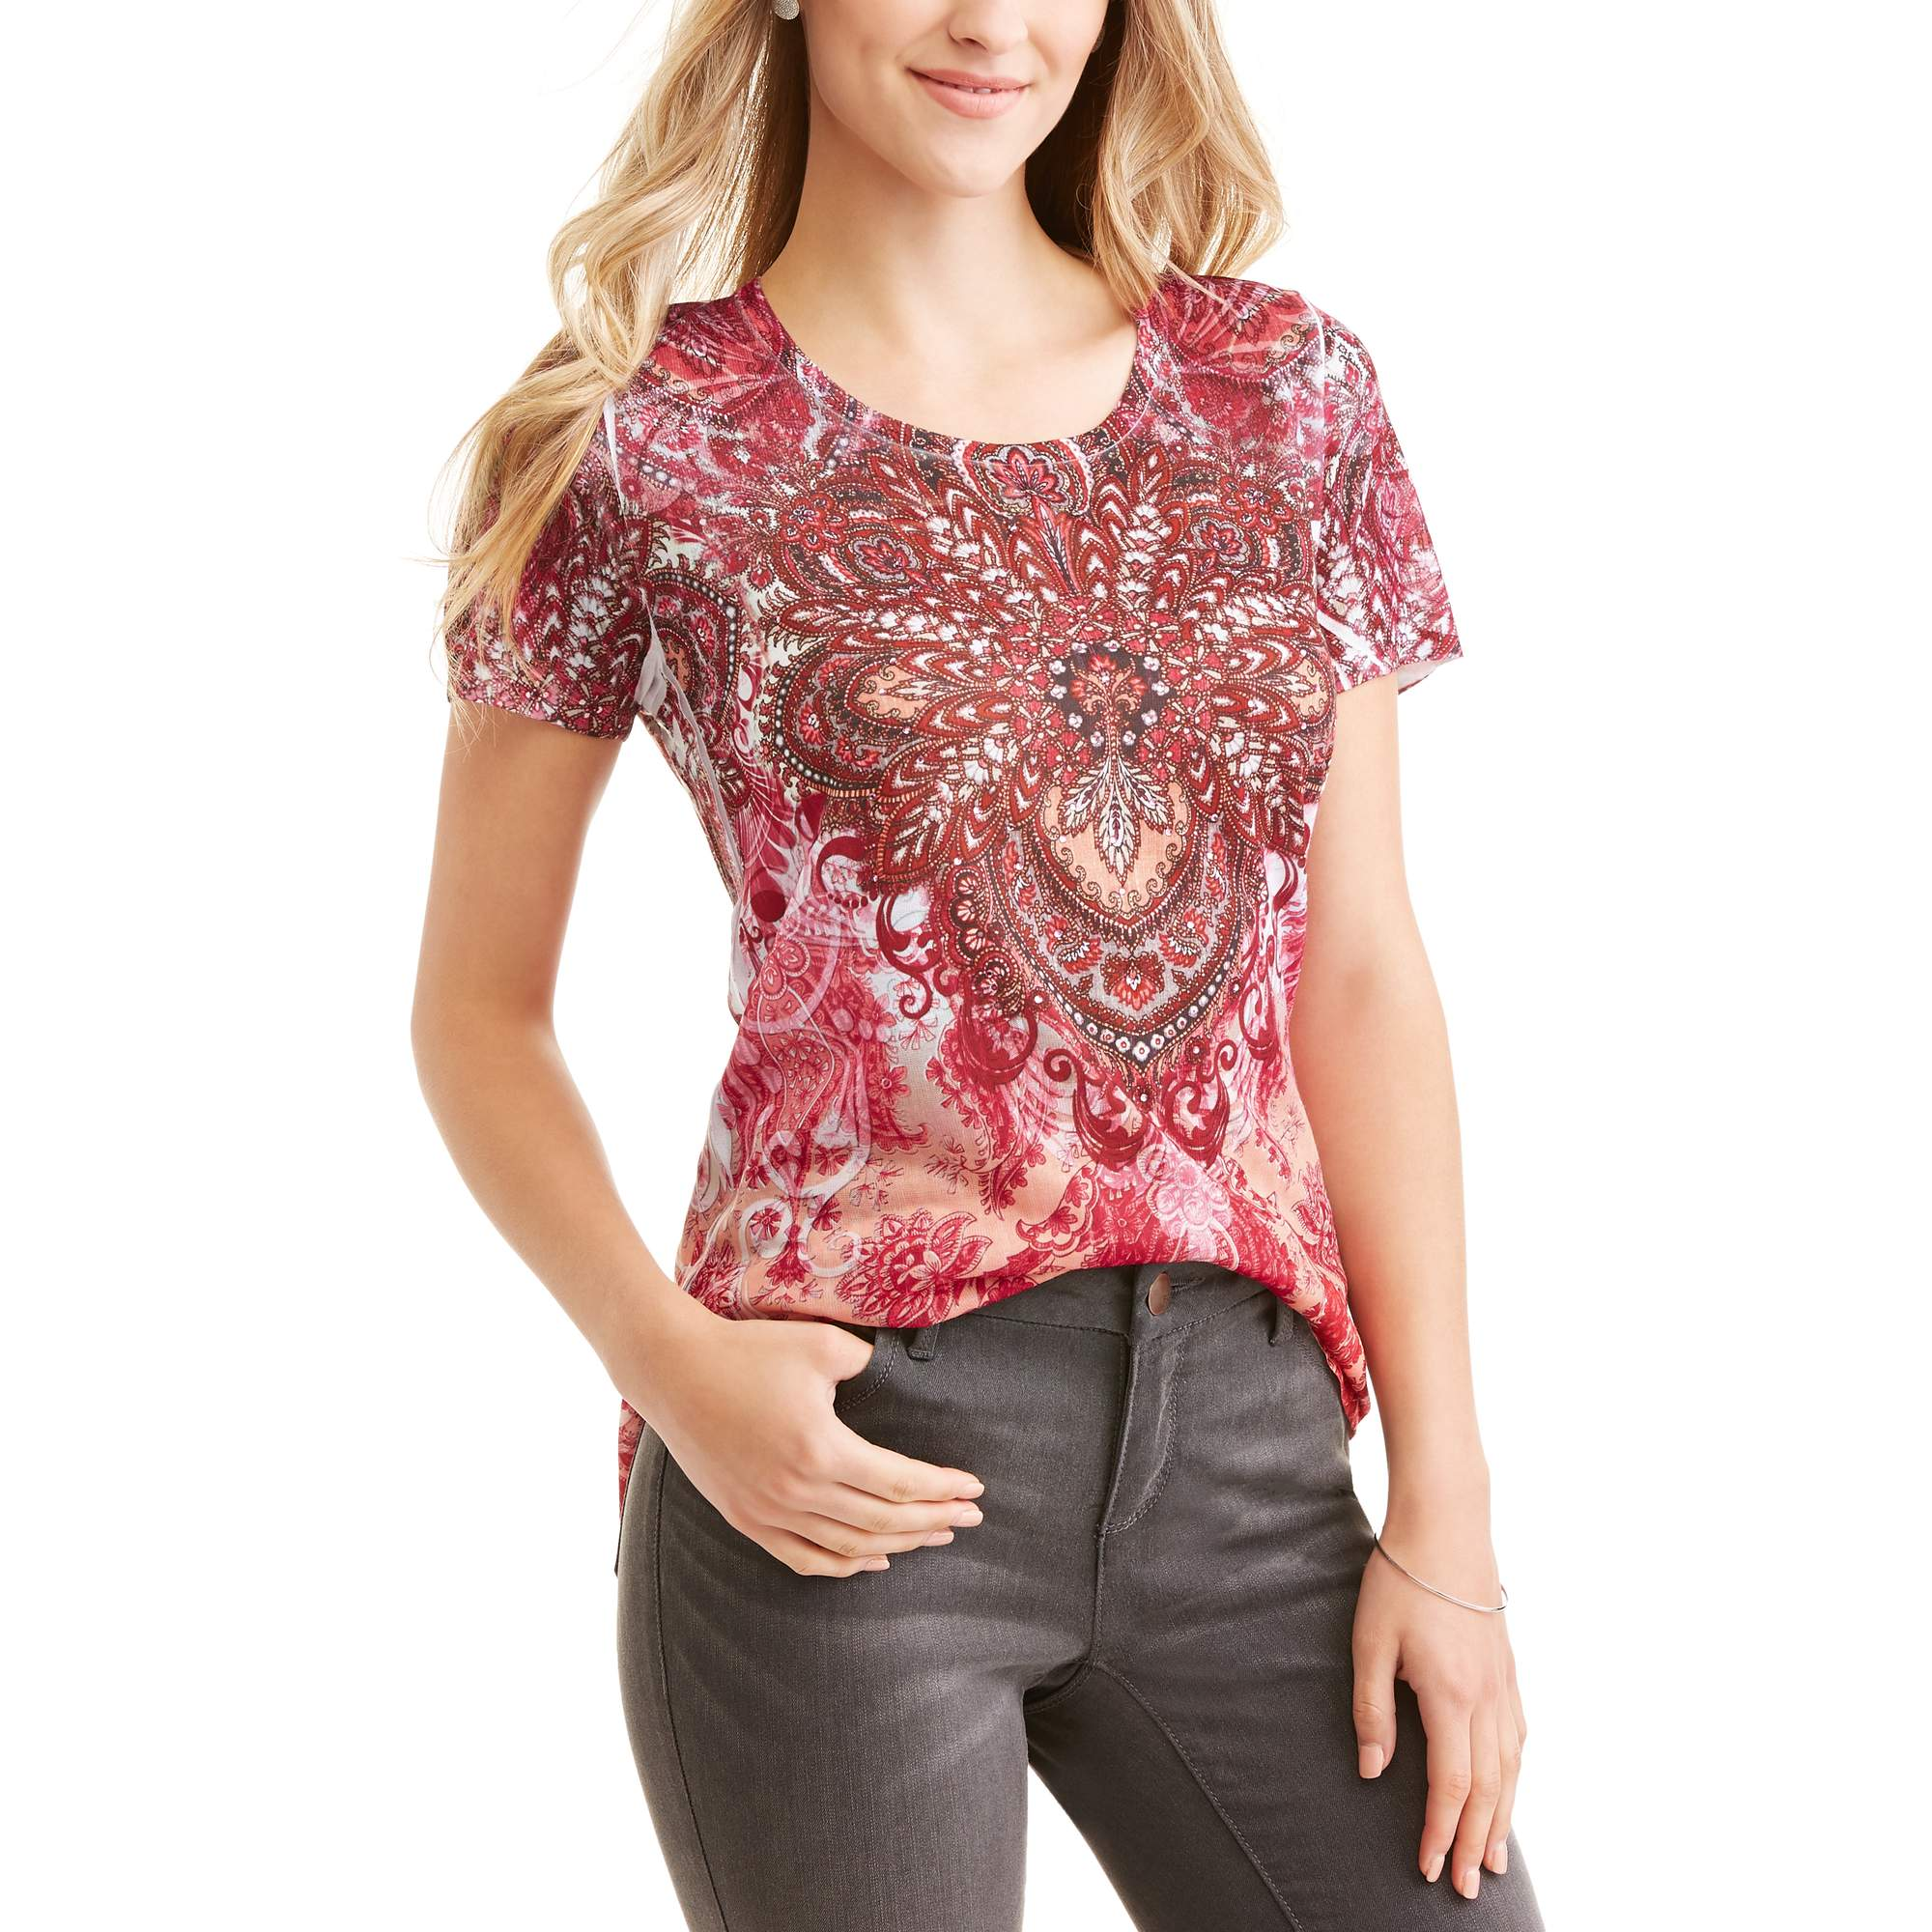 Tru Self Women's Short Sleeve Scoopneck Allover Print Tunic